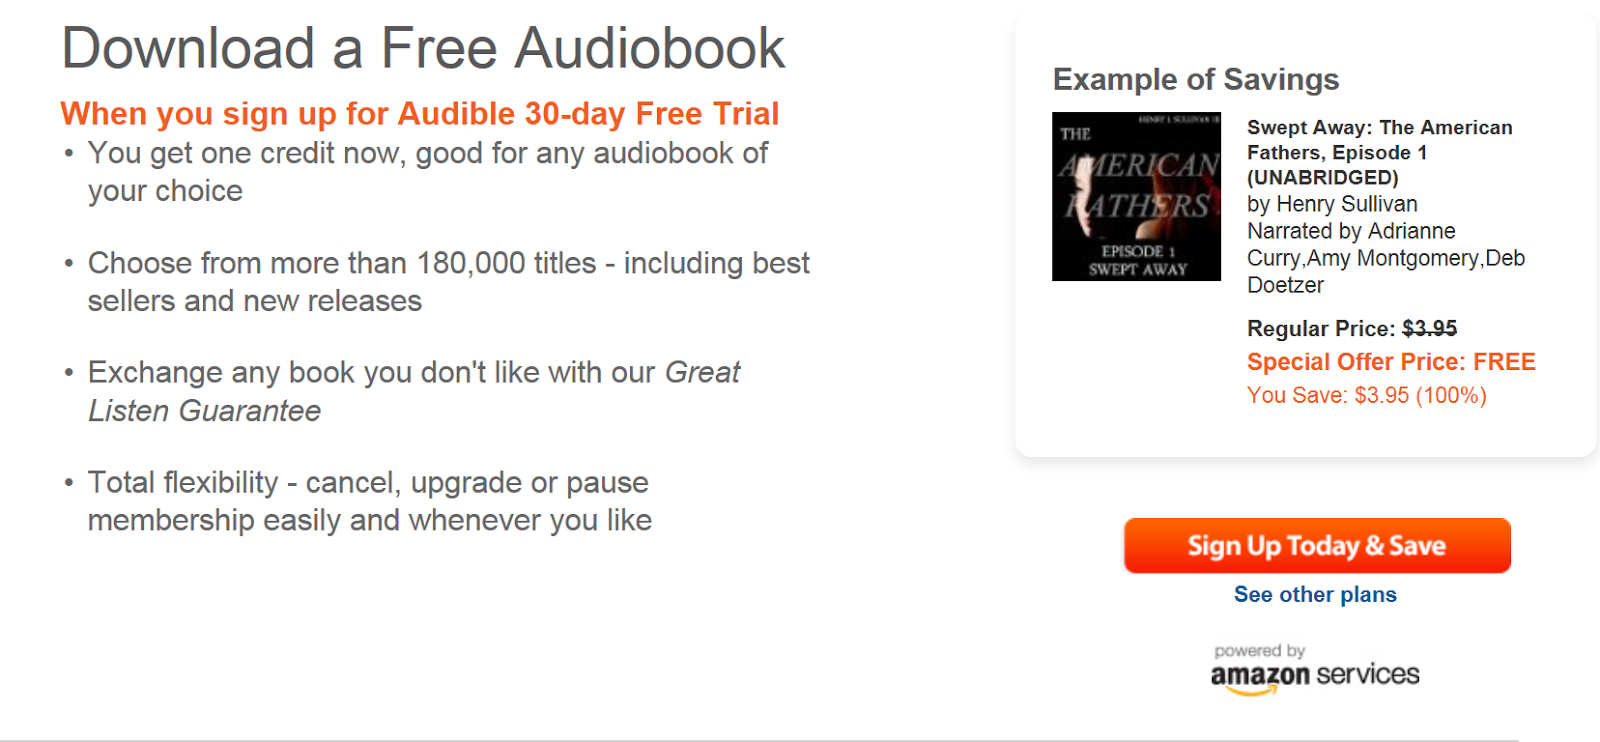 Listen to Audio Books for Free